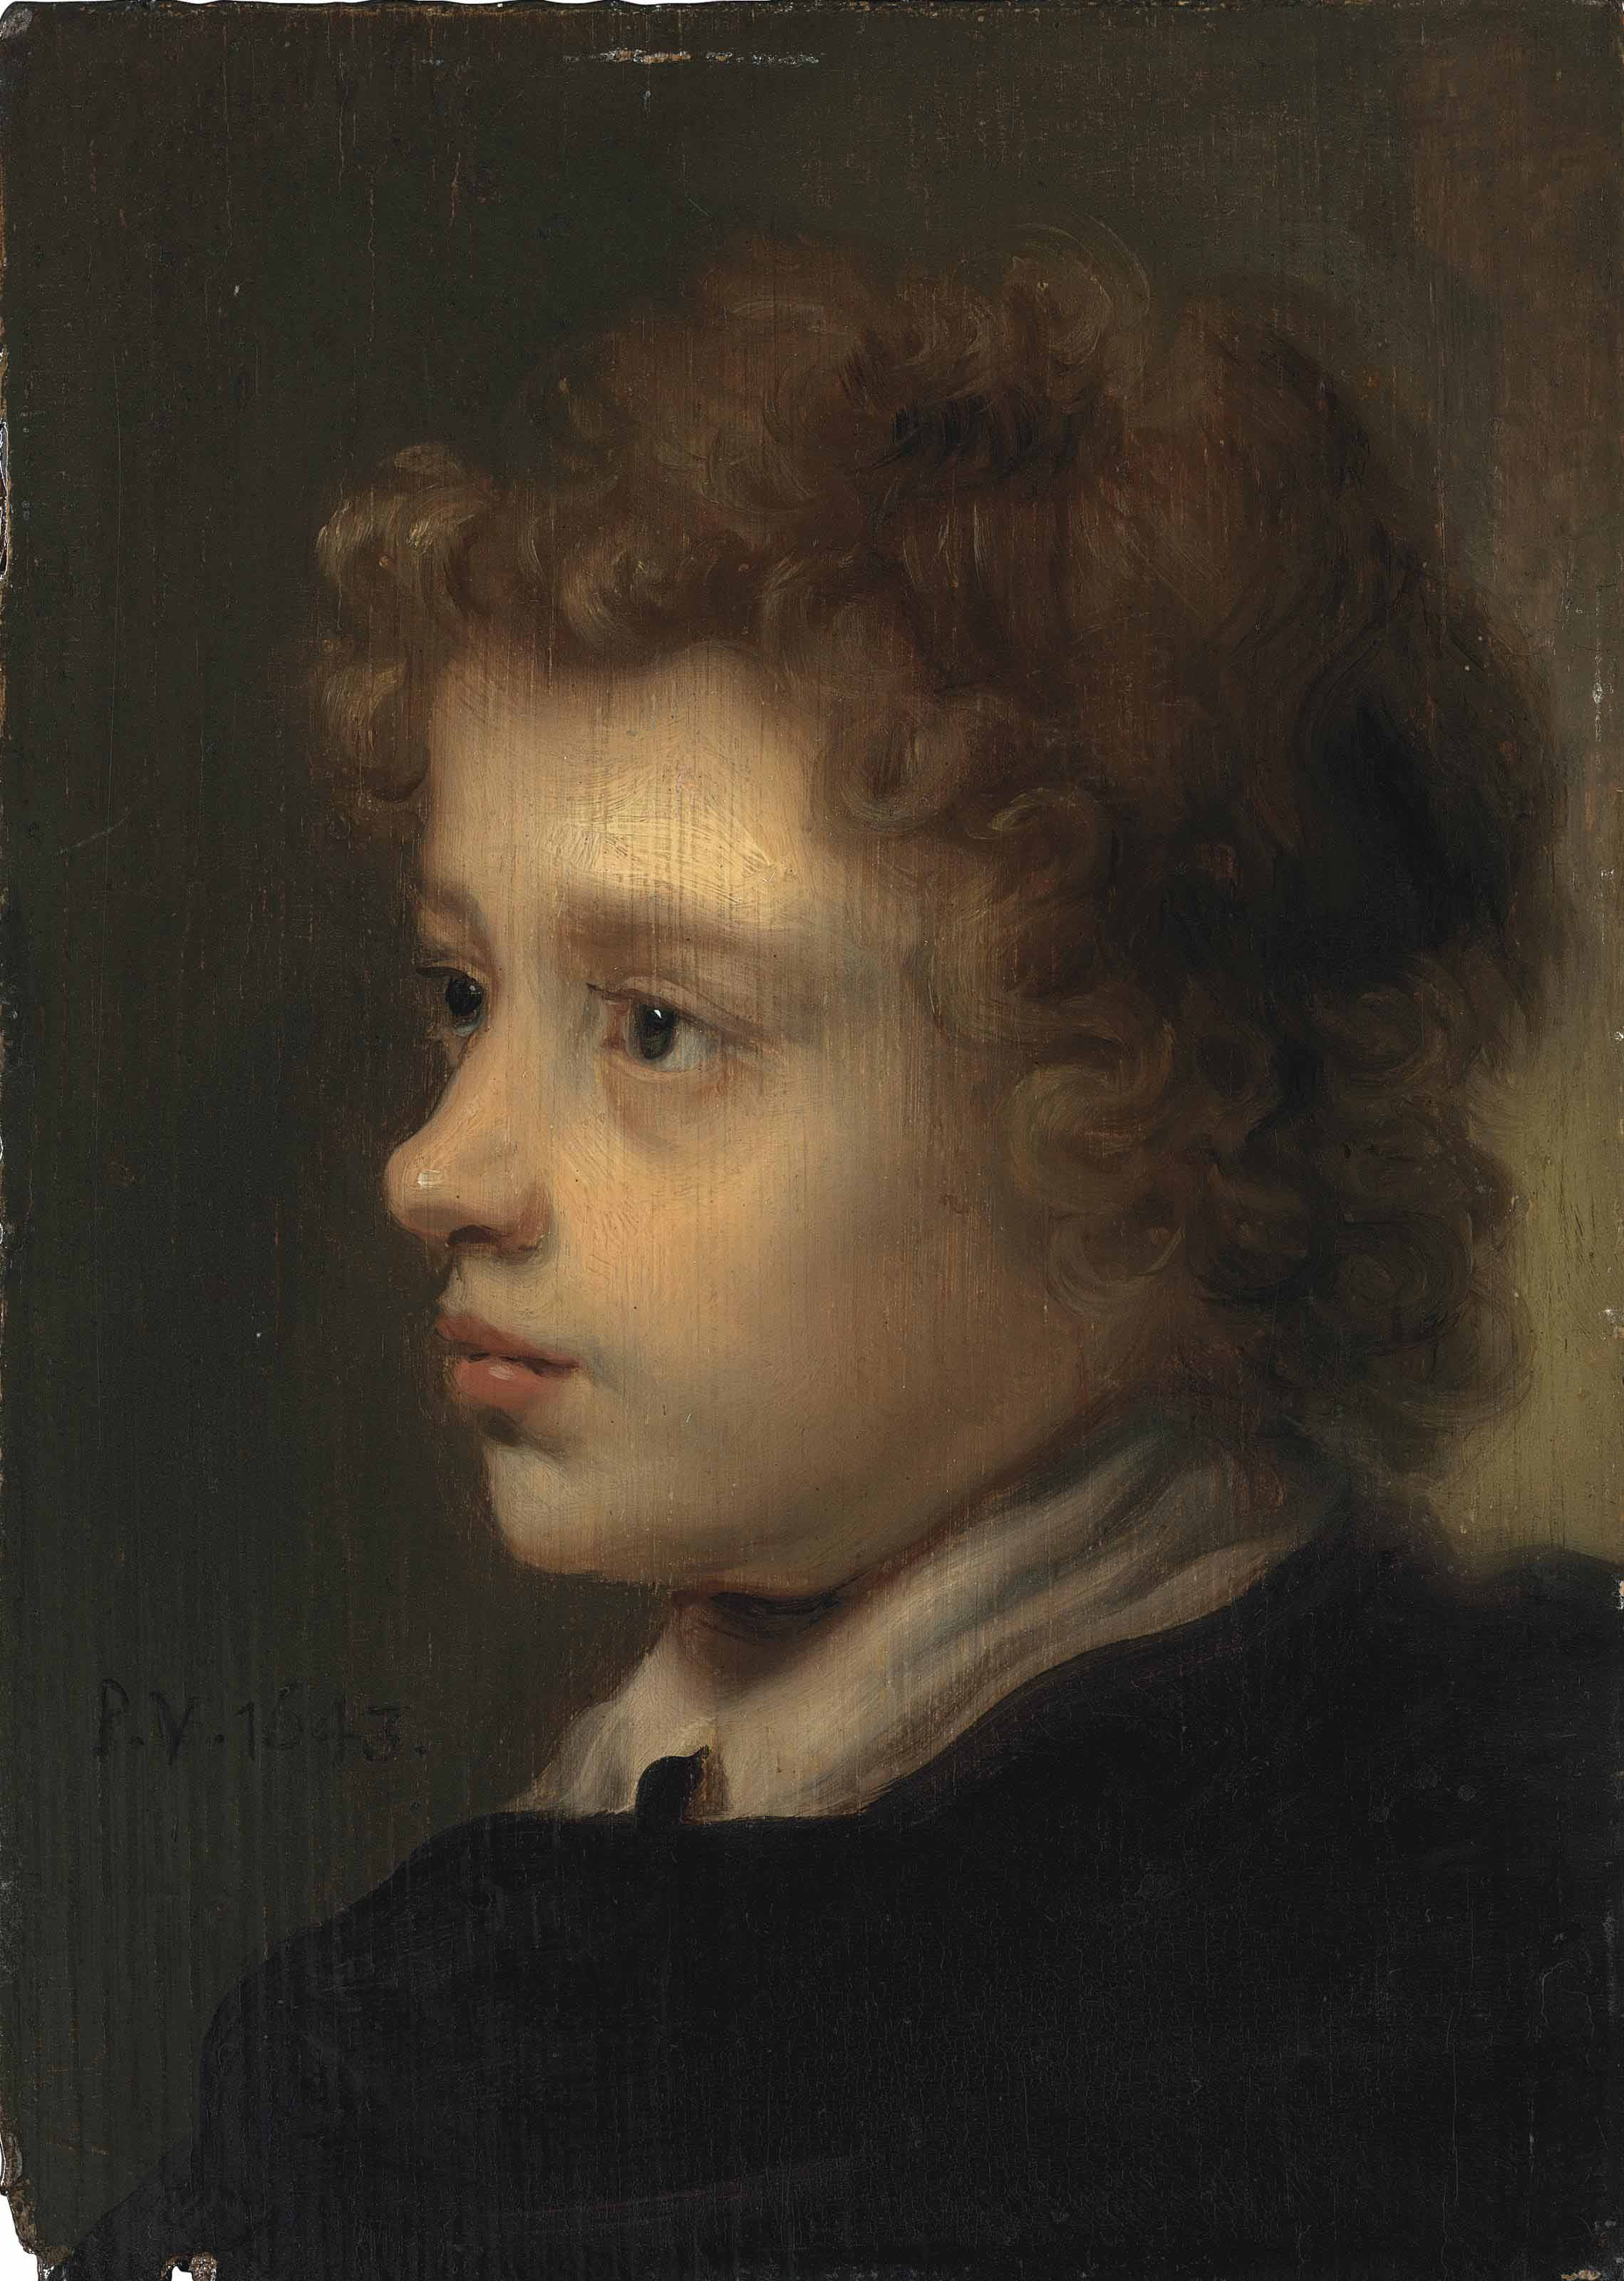 Head study of a young boy